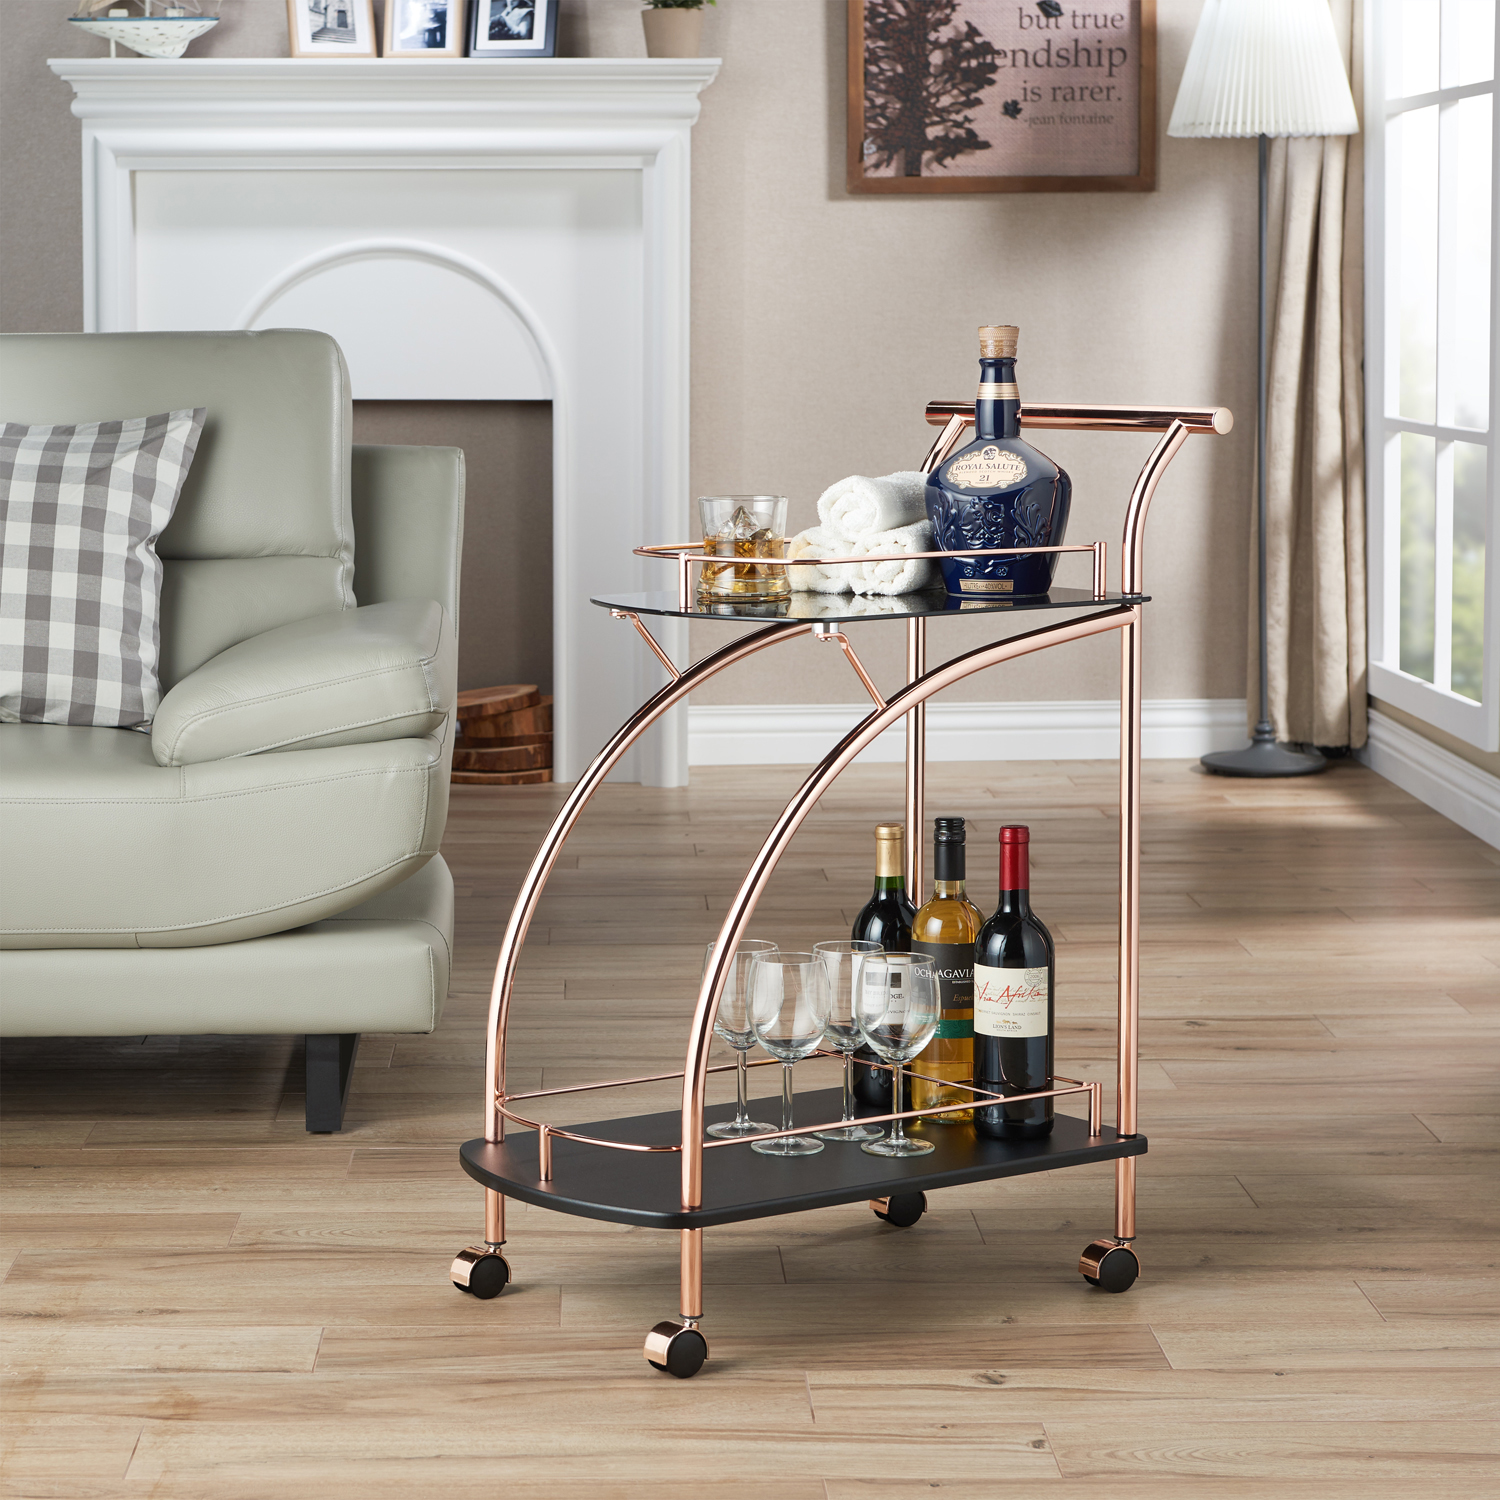 Furniture of America Jaliee Contemporary Serving Cart, Rose Gold and Black by Furniture of America